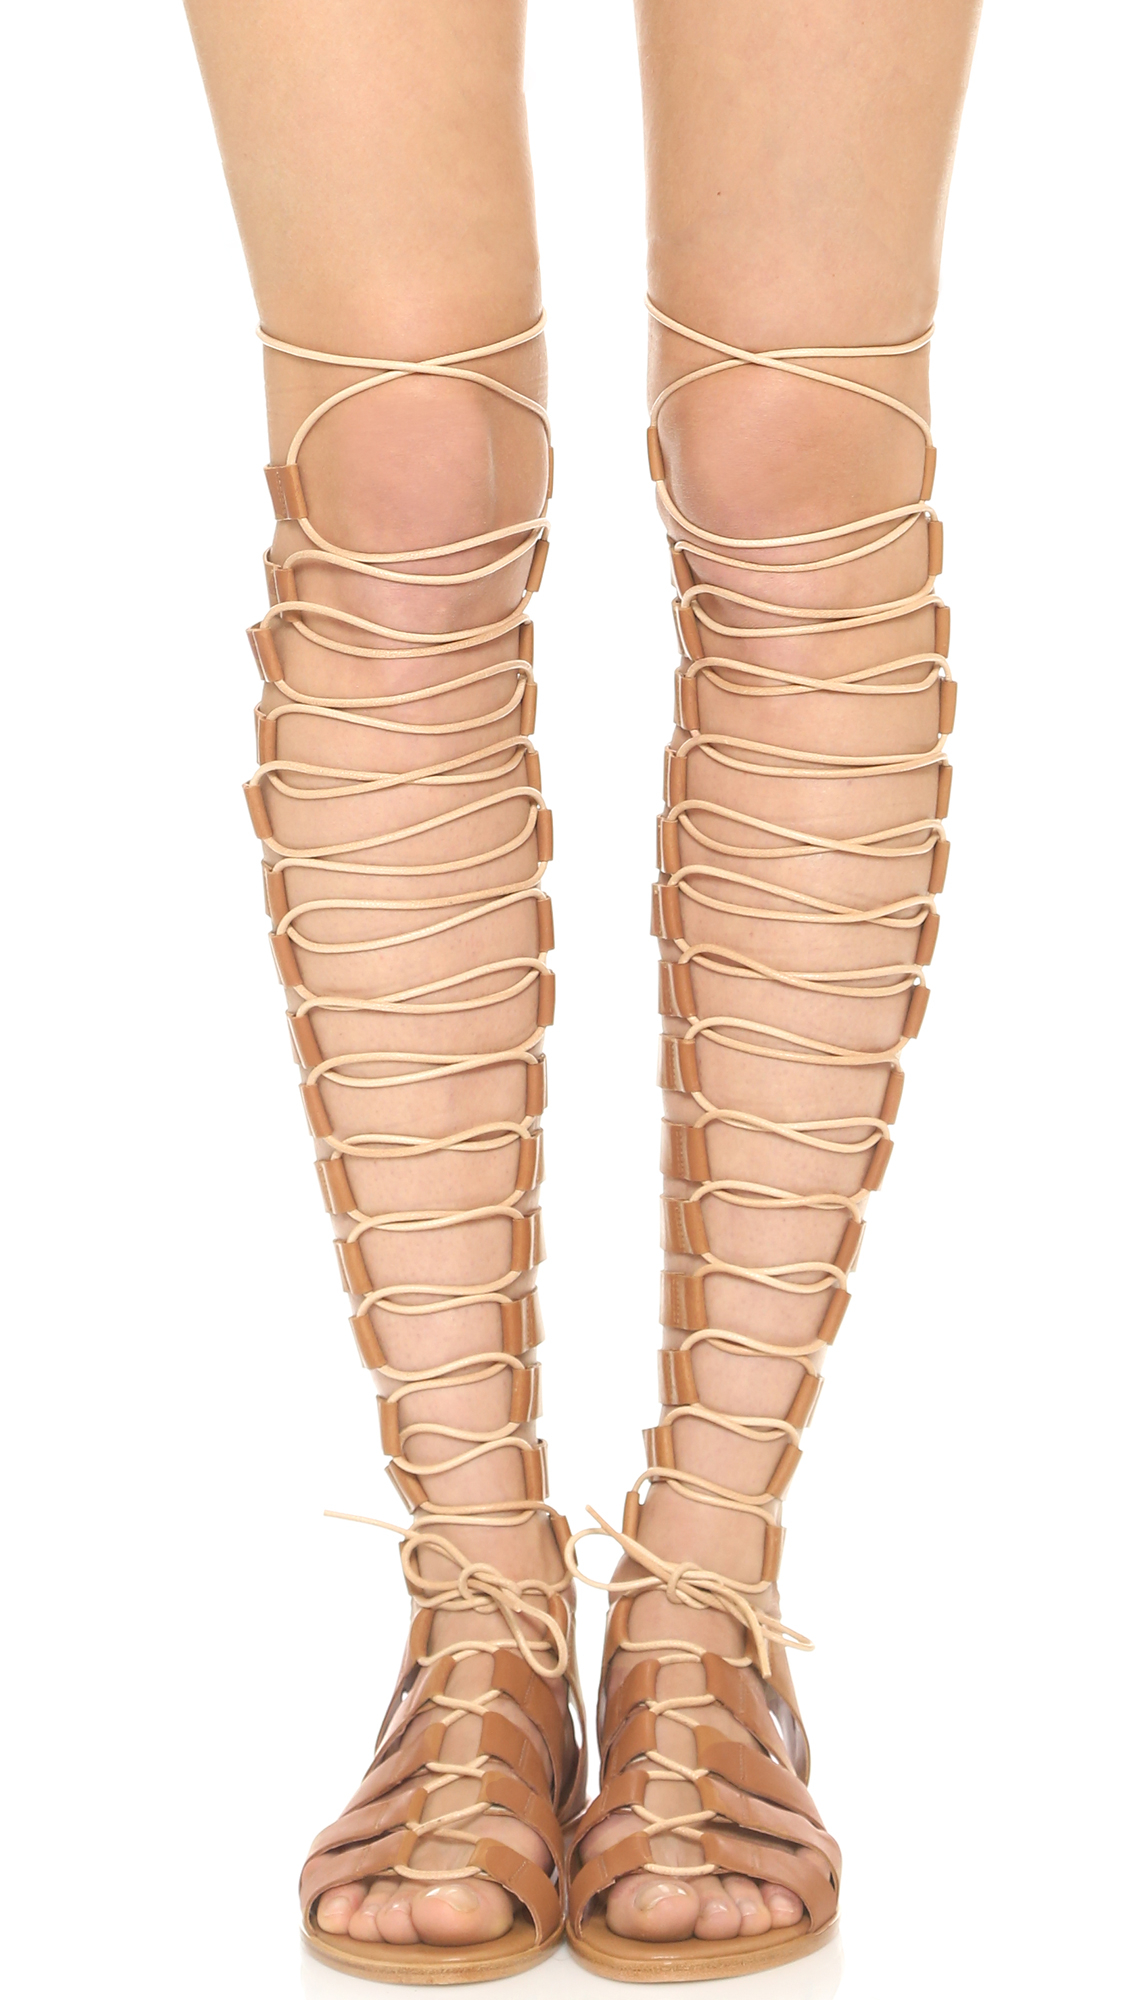 Beige Gladiator Heels - Is Heel